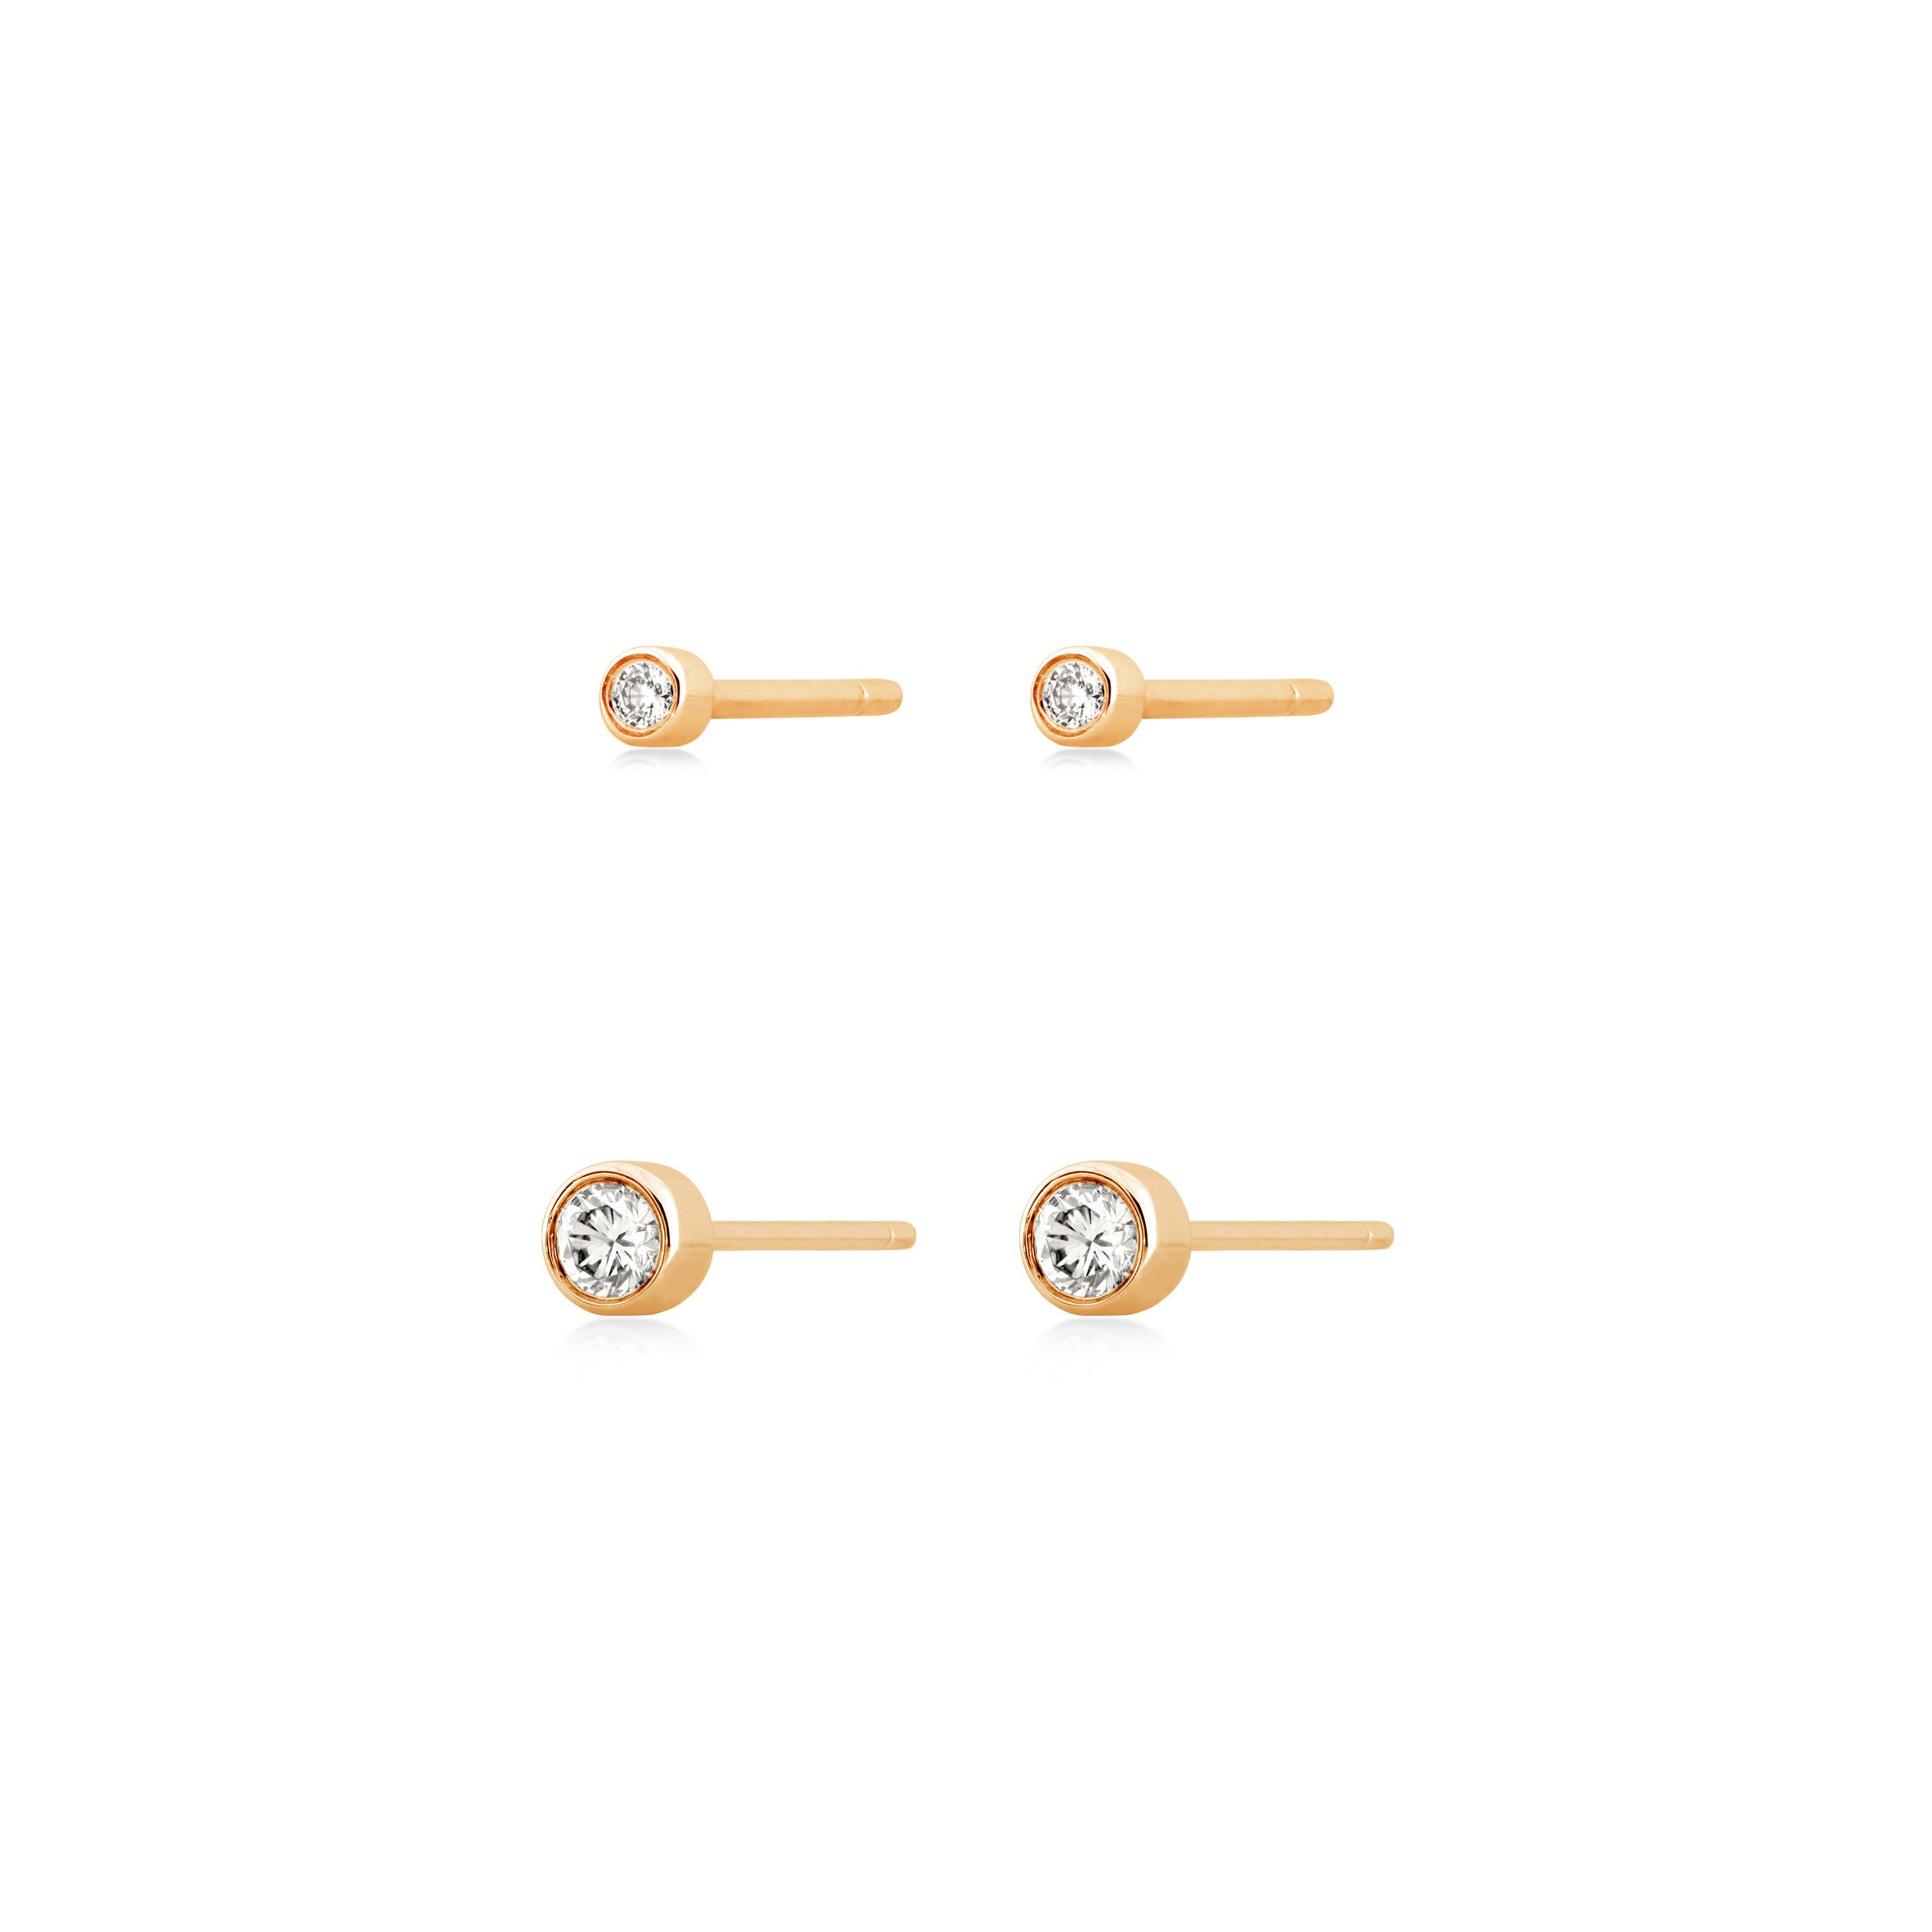 Bezel Set Stackable Studs , Earrings - Fine Jewelry, RoCHIC, RoCHIC Designer Fine Jewelry